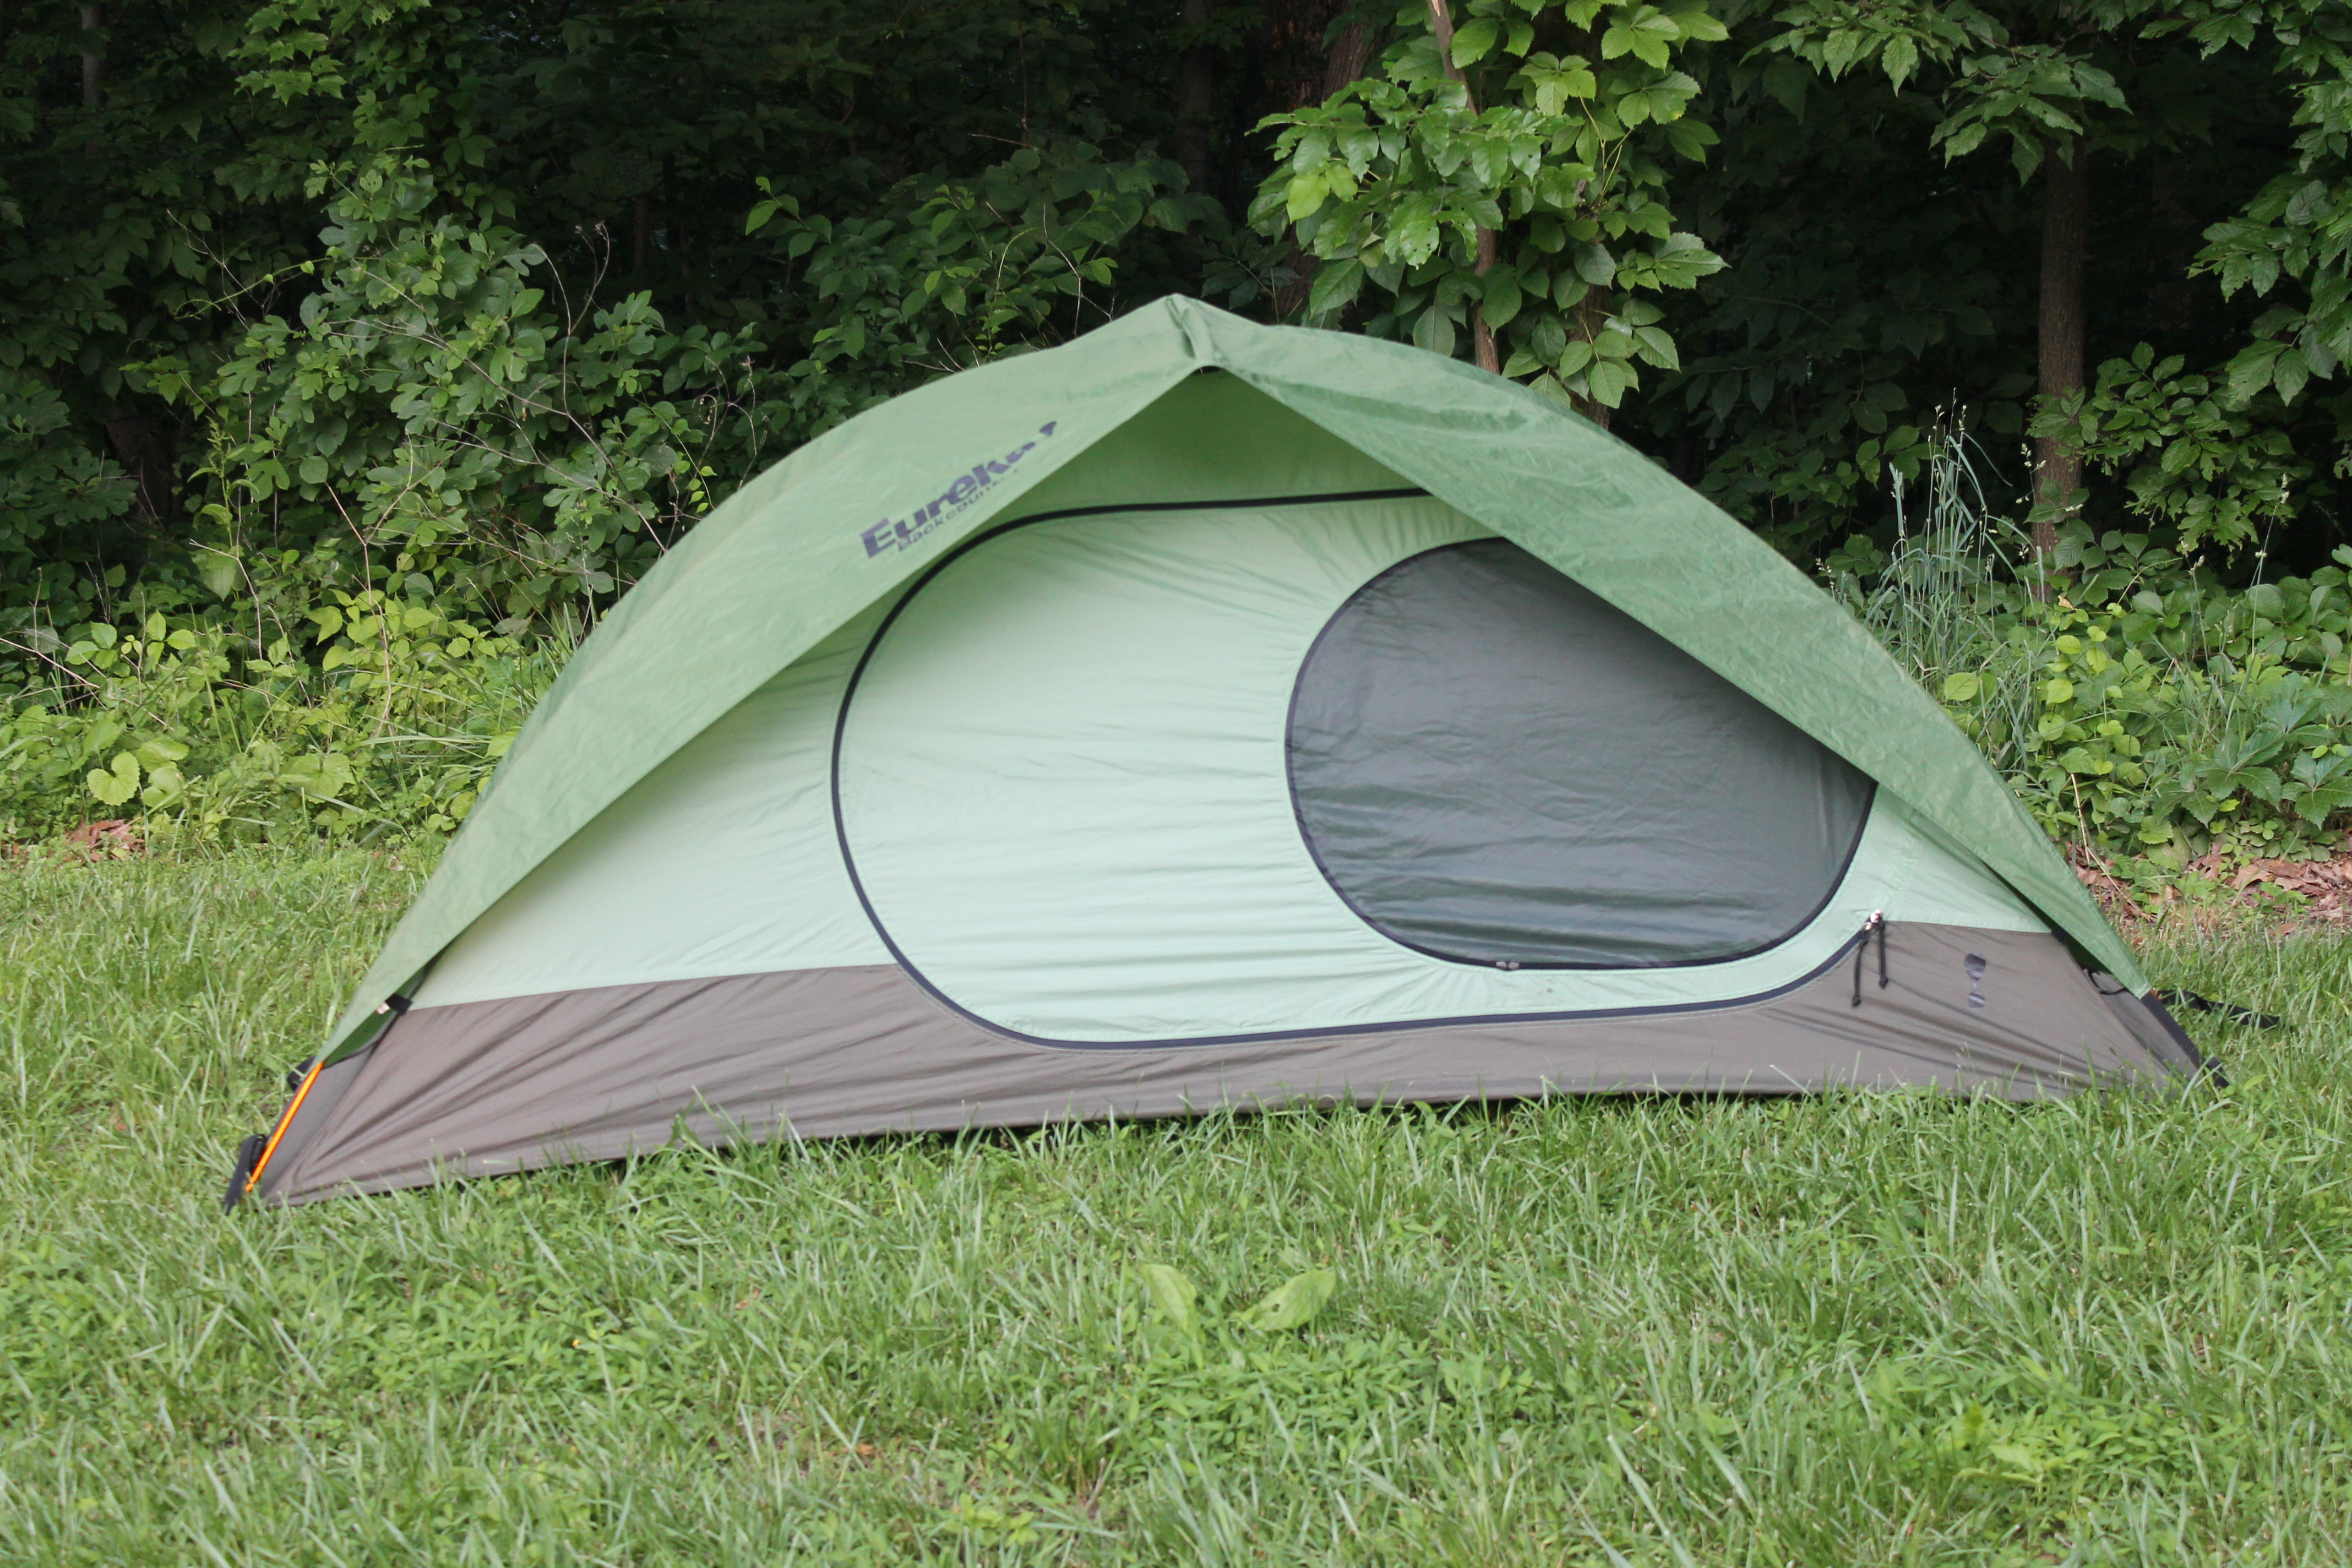 Eureka Backcountry Tent & In-Tents Tent Maintenance | SmoothingIt.com